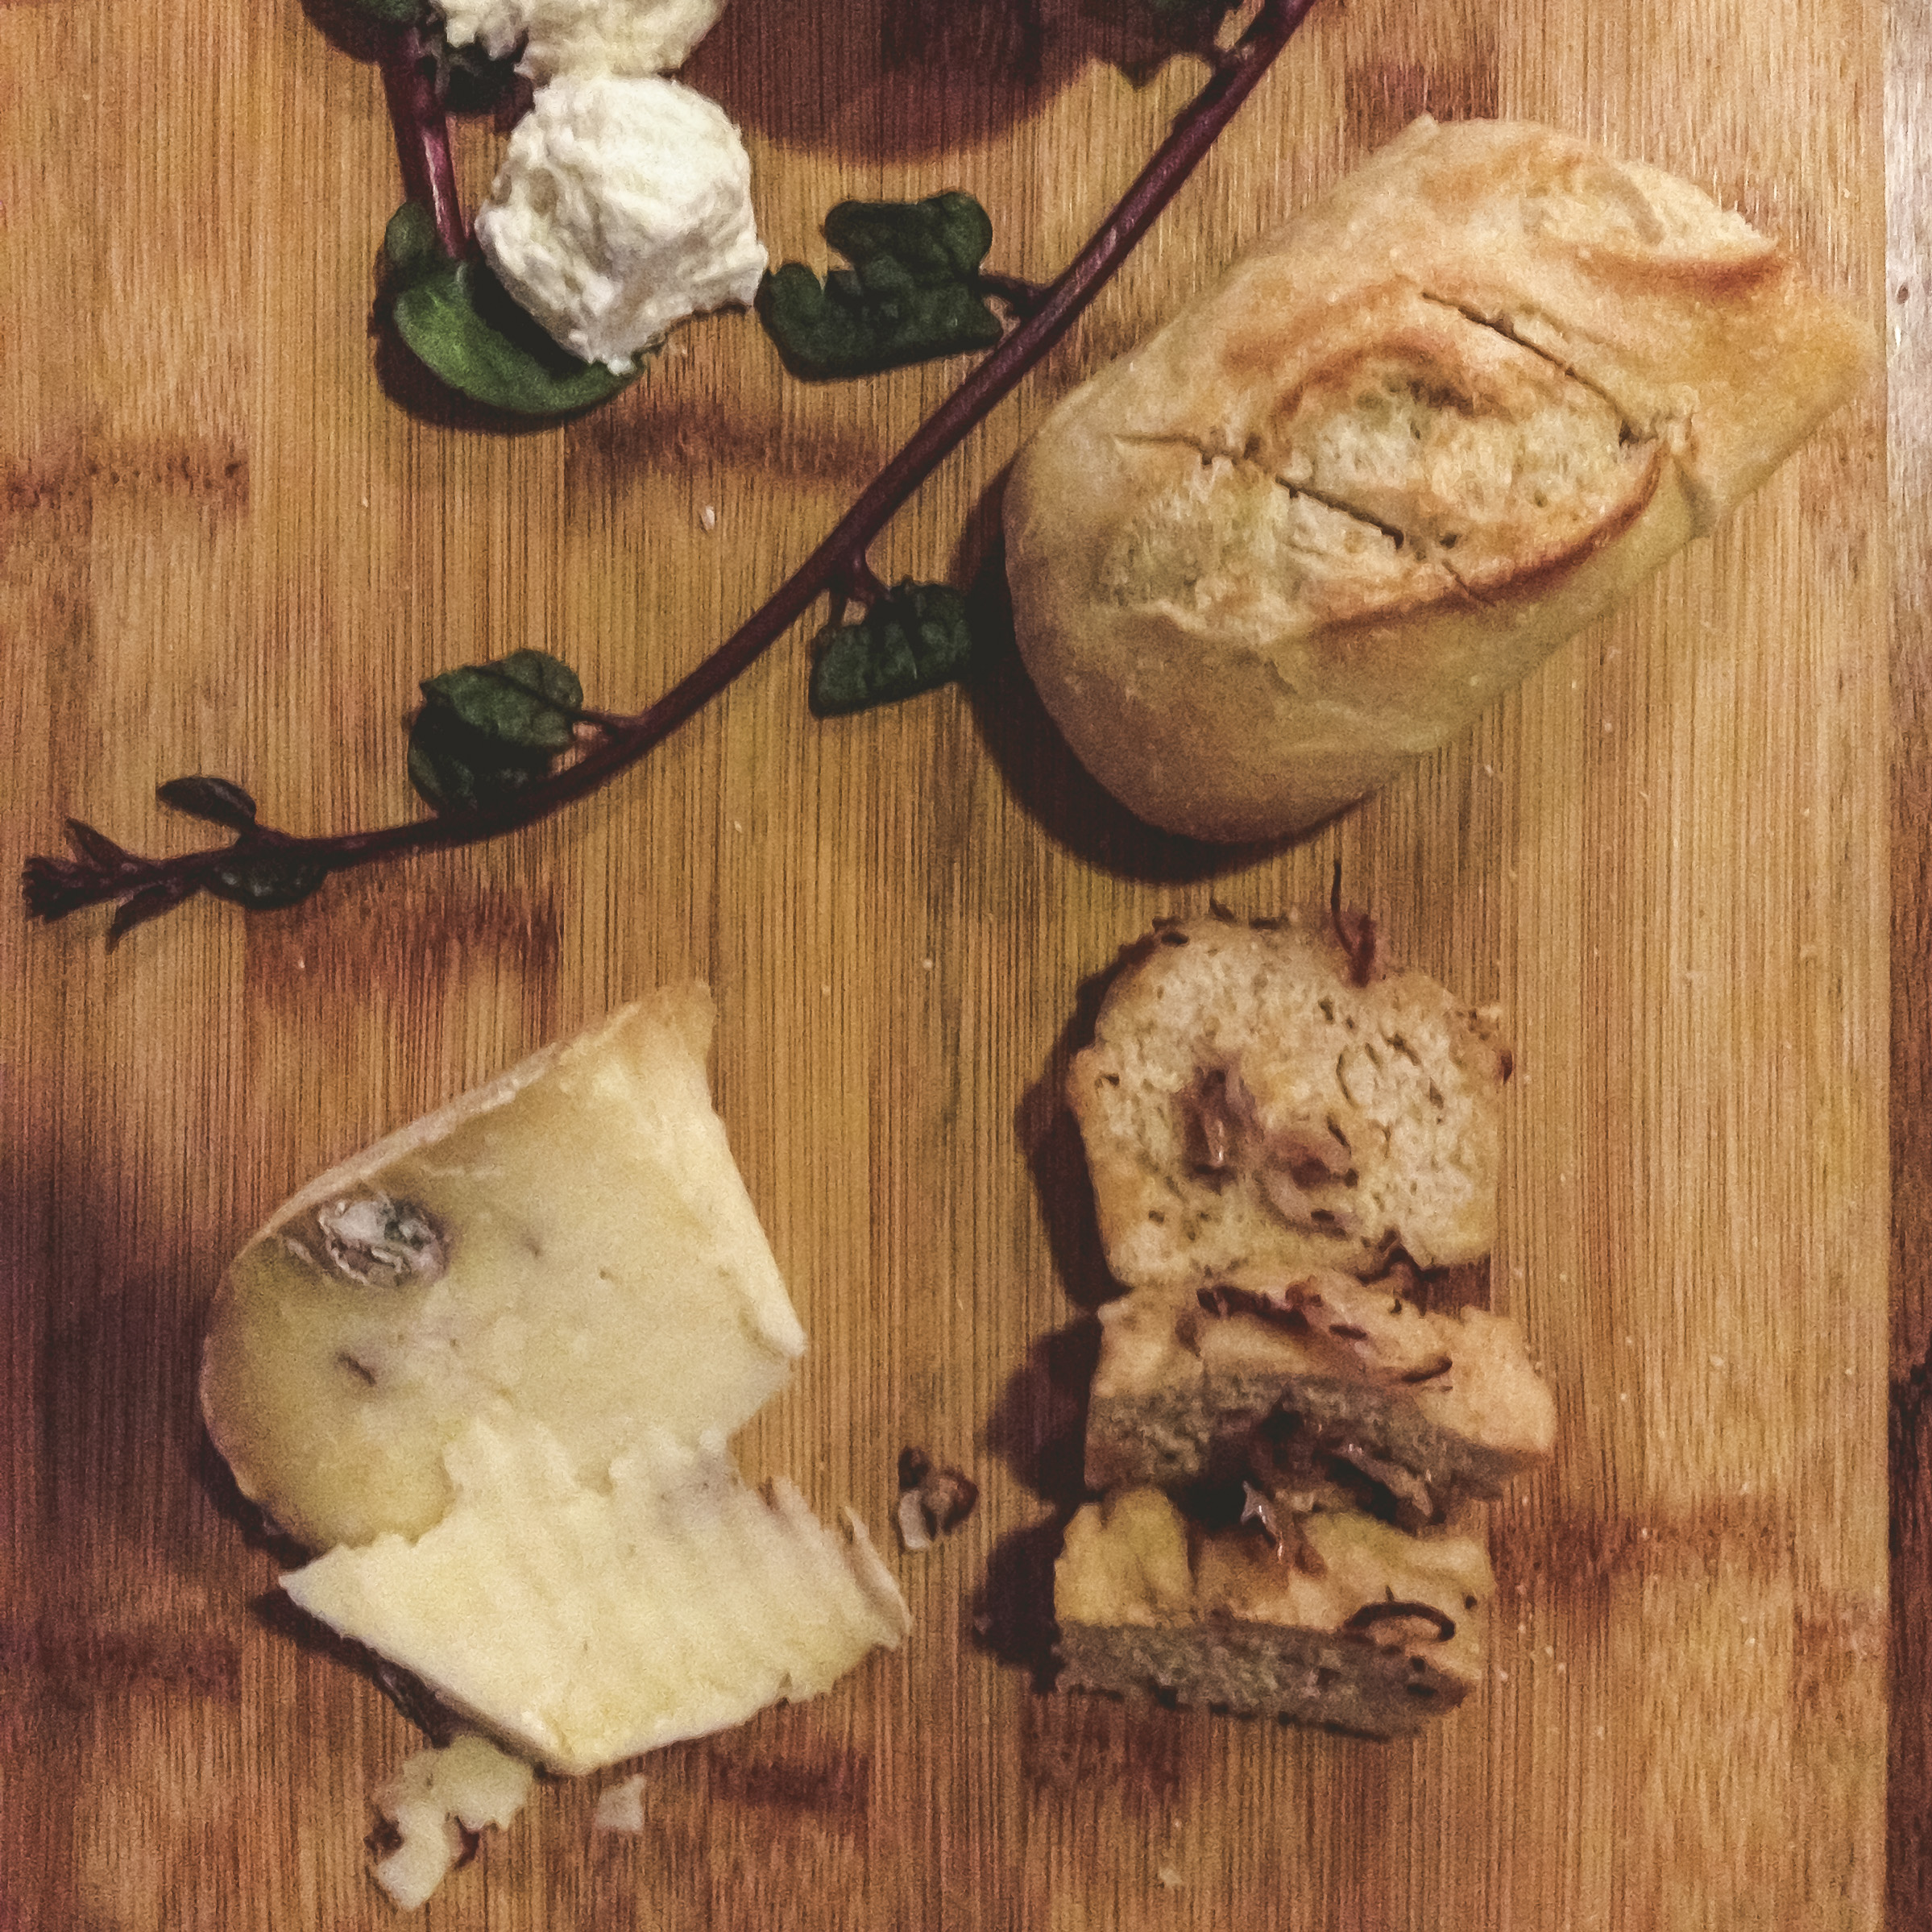 Cheese boards from full of local cheeses from Hannah's always make us happy. This one is filled with local goat cheese, a pecan horseradish cheese and plenty of beer bread.